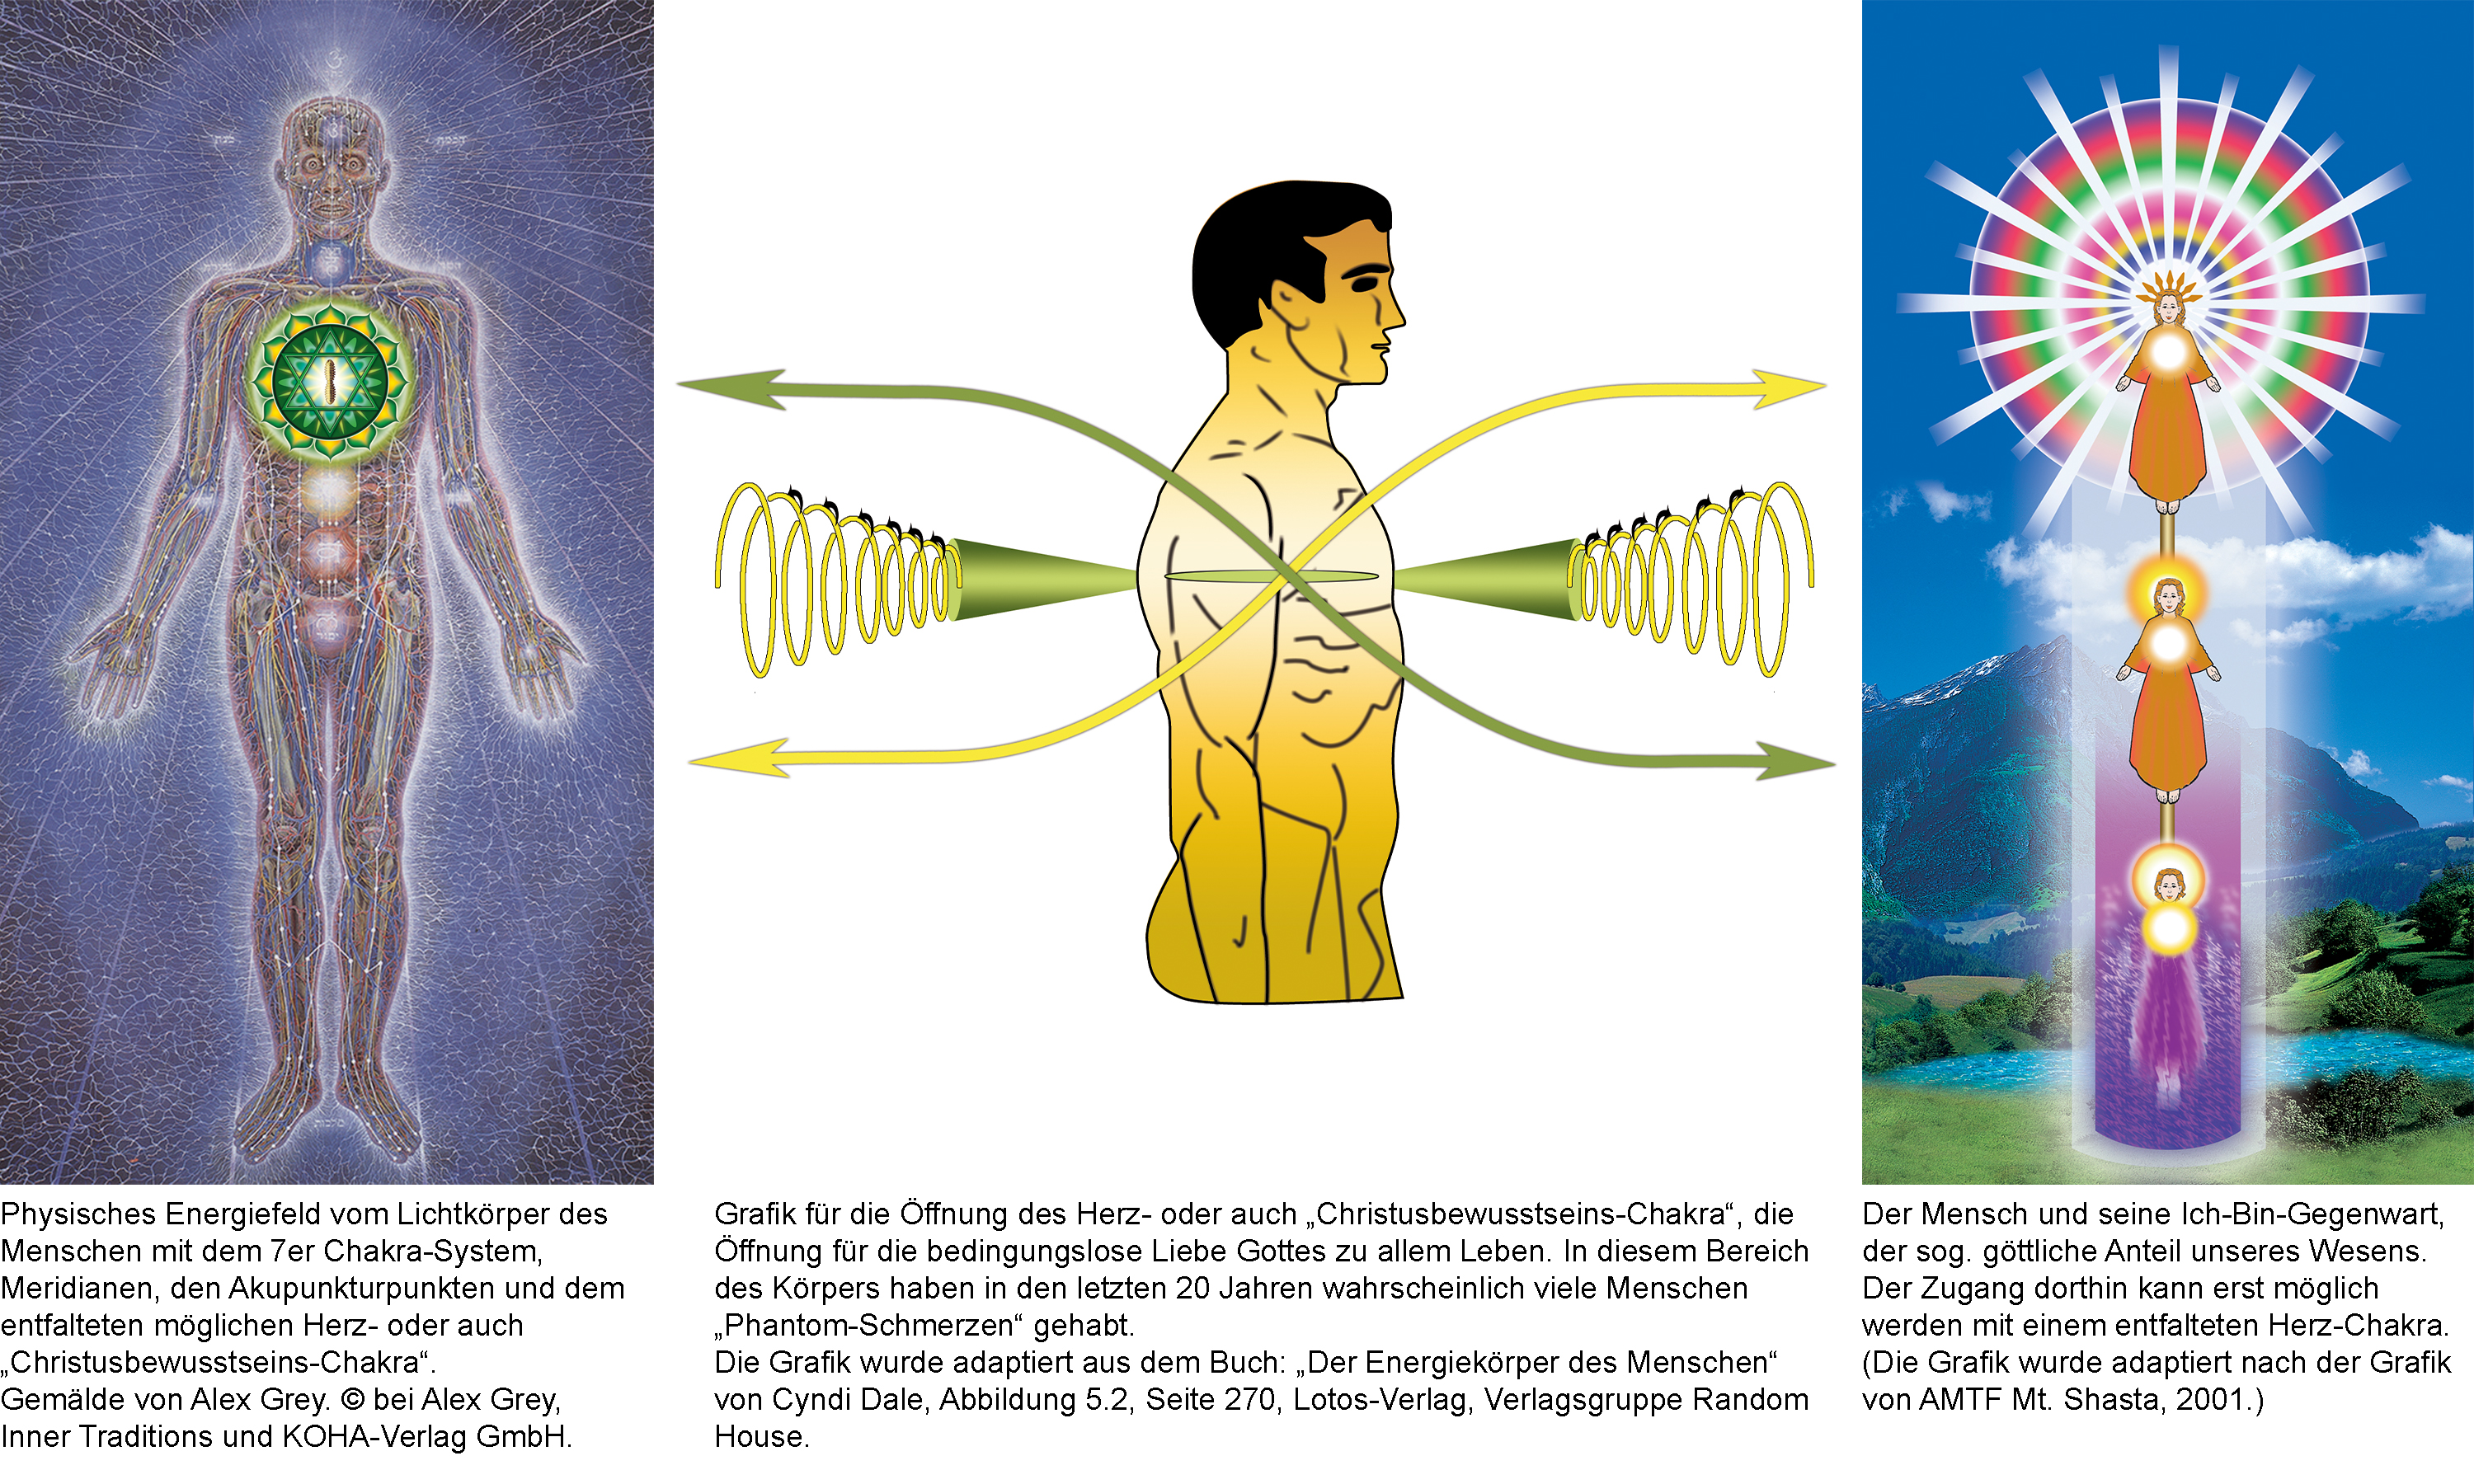 The light body of the human being with 7 chakra system